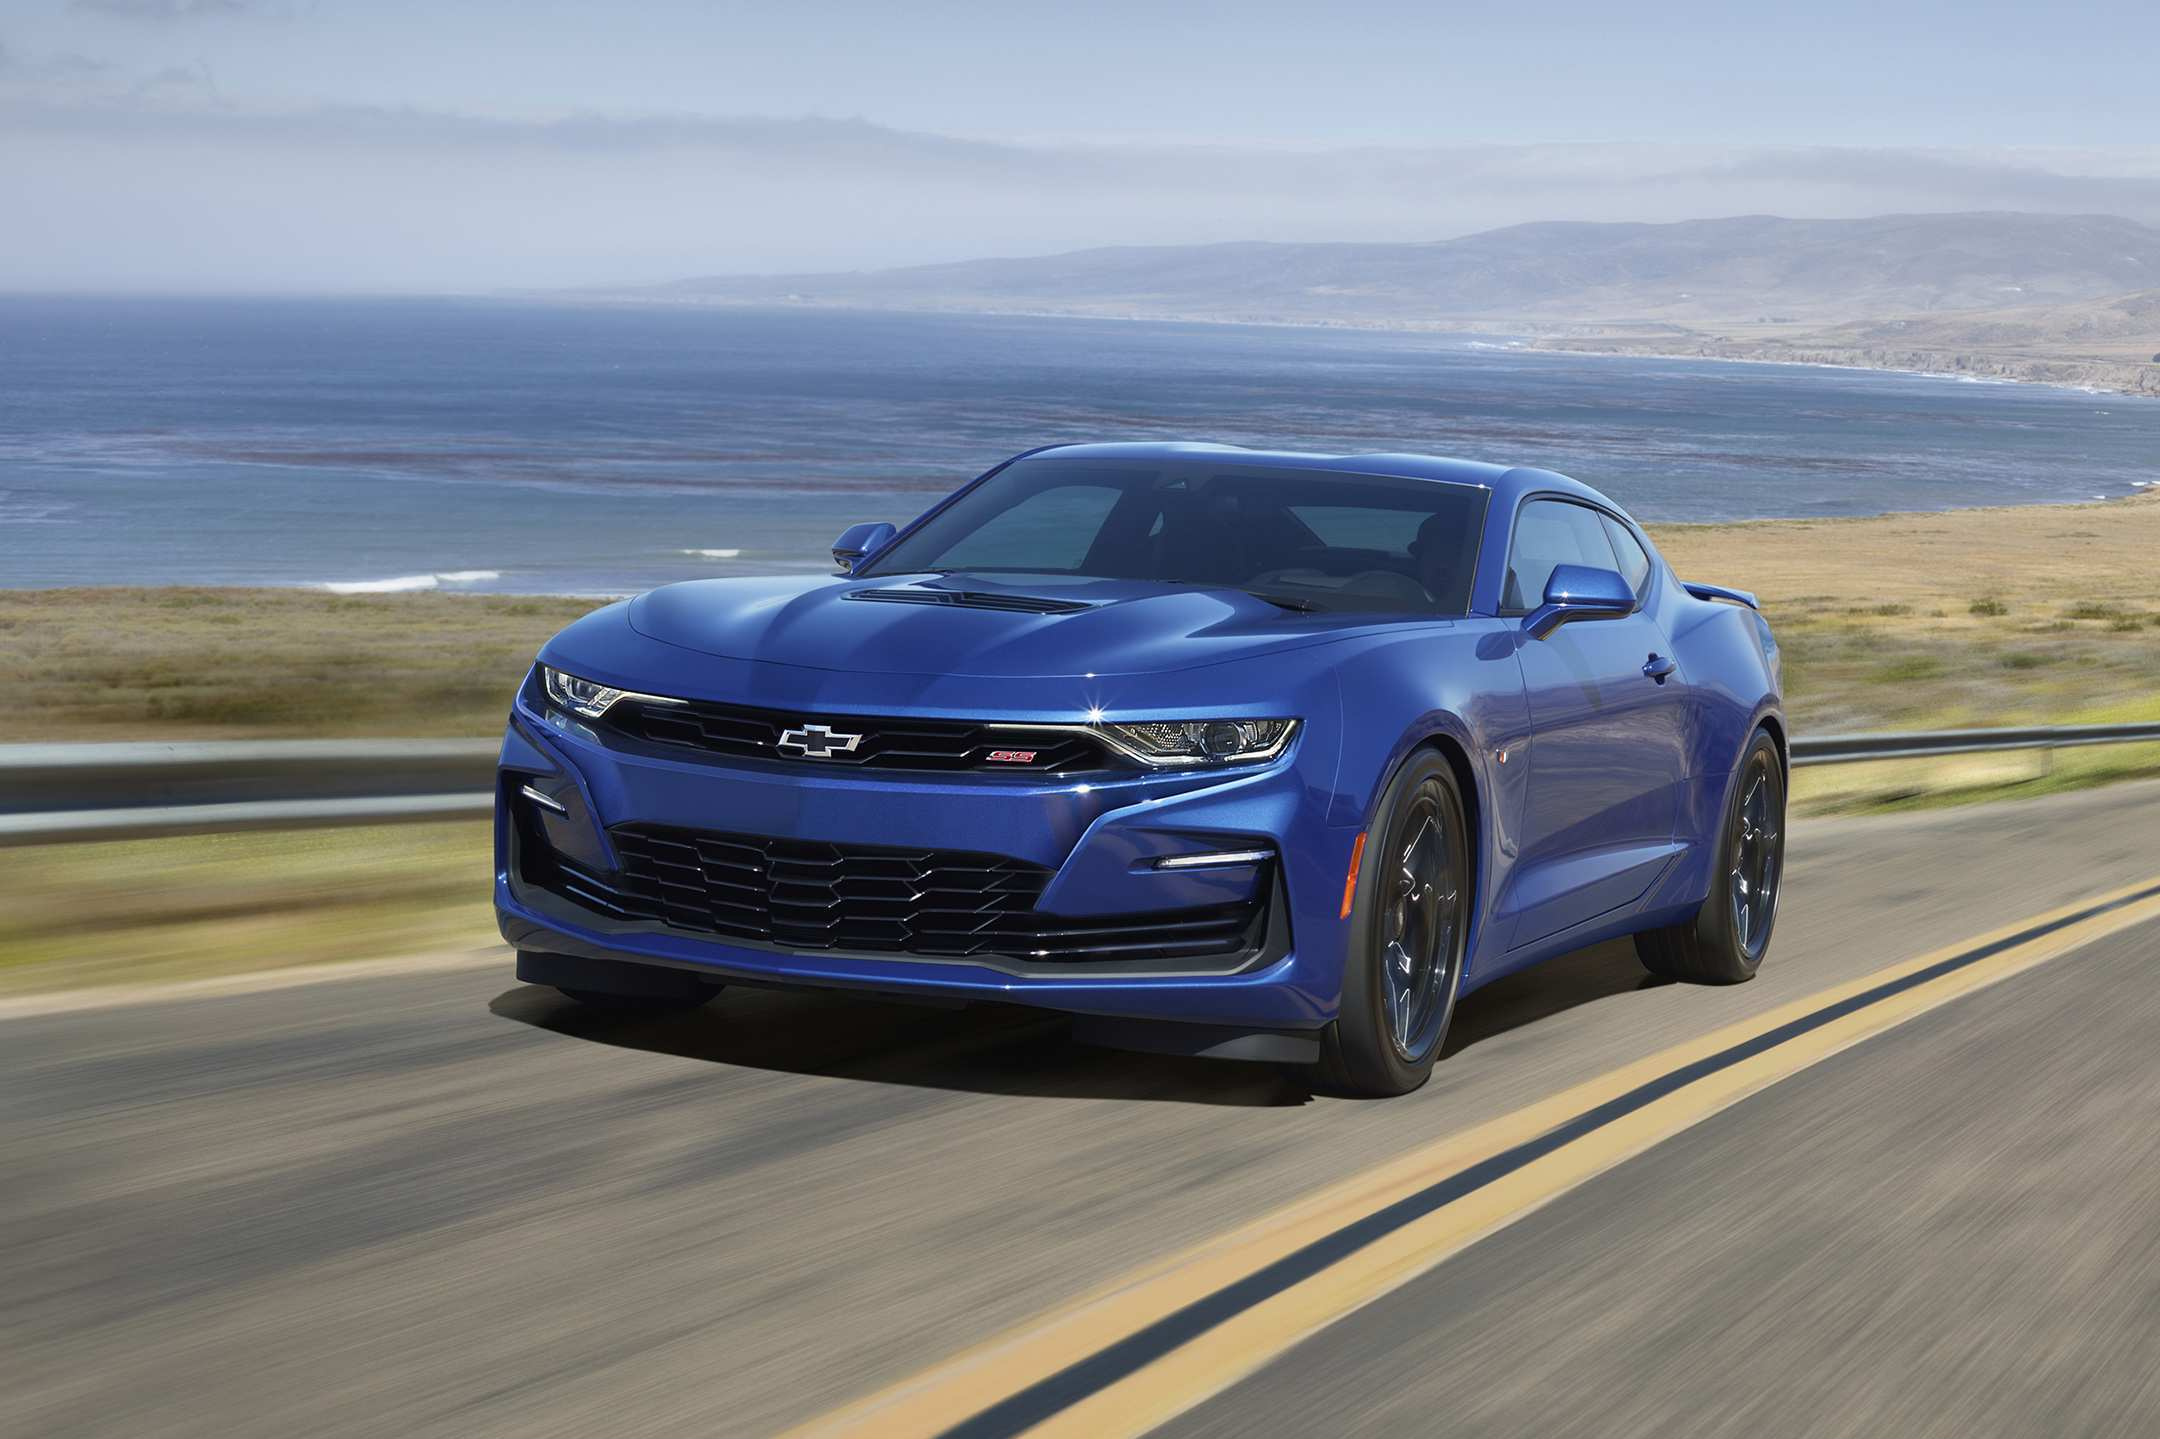 42 New Chevrolet New Models 2020 Price And Review